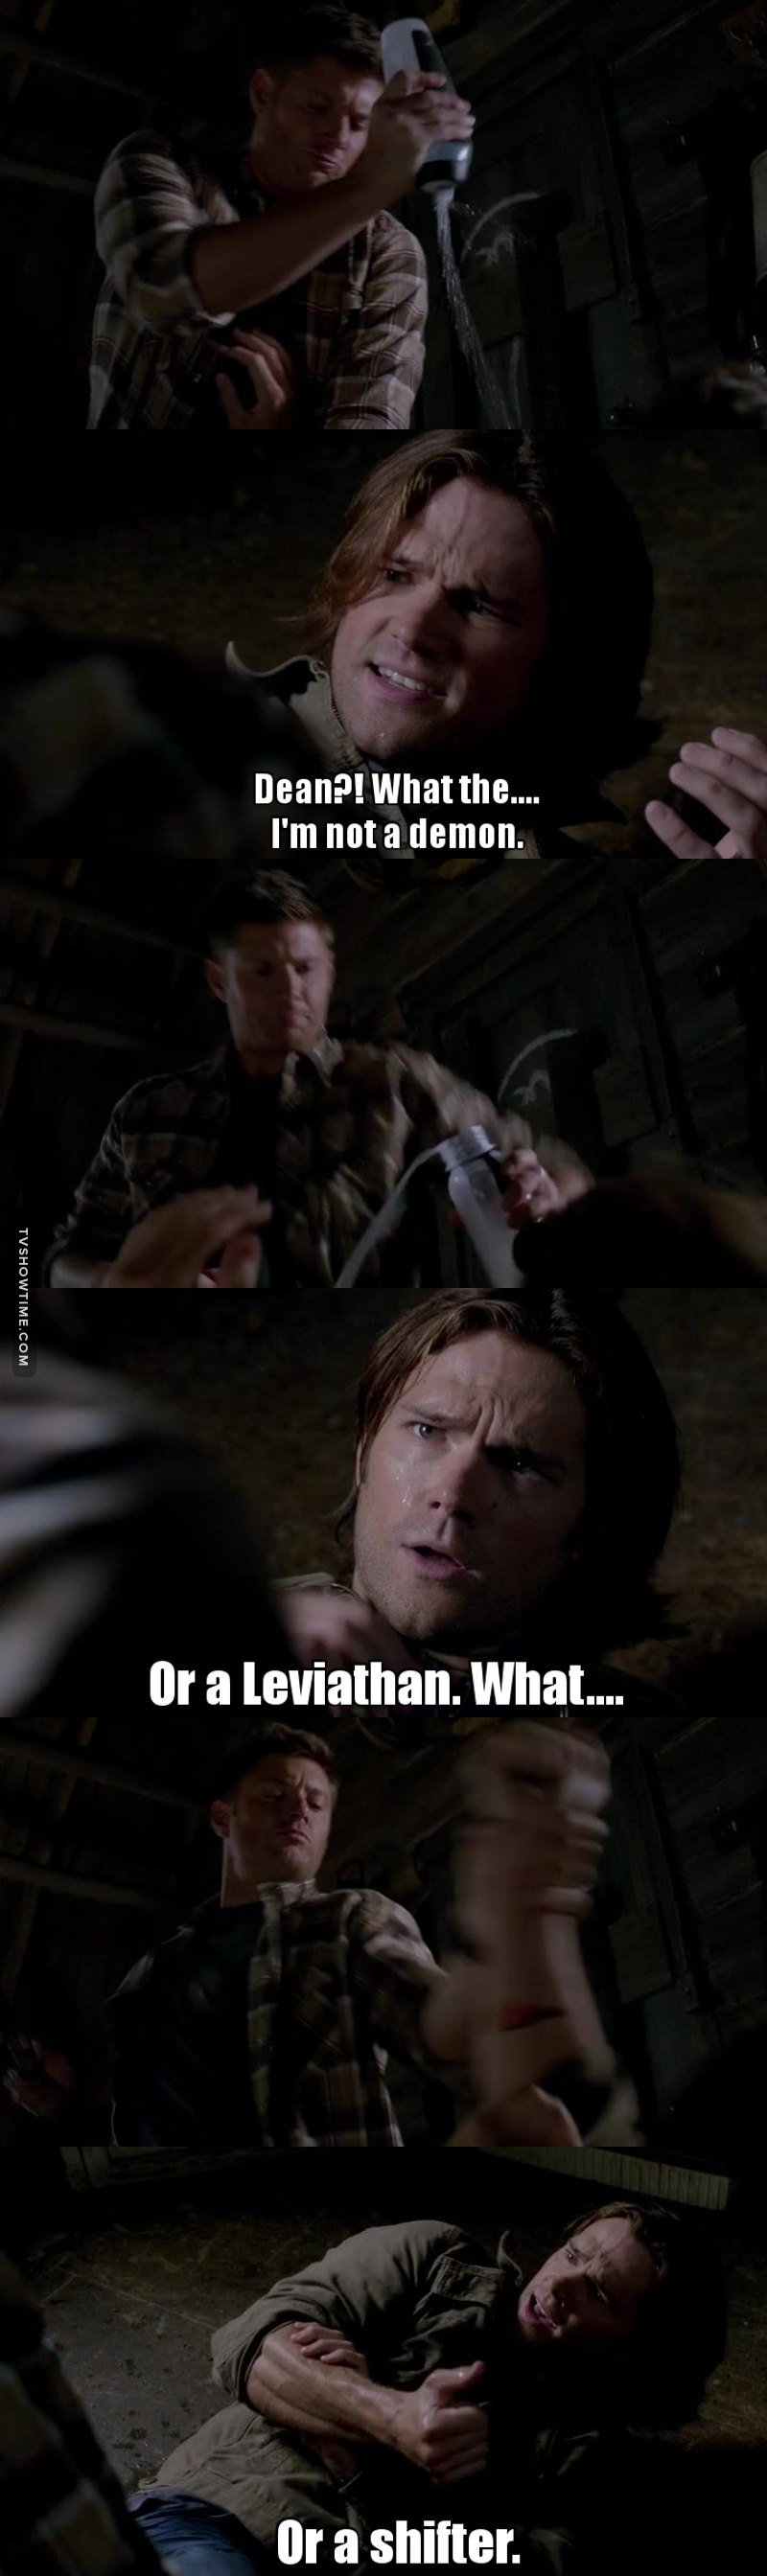 Dean is always my favorite, but I don't get why he's so upset with Sam, after all Dean had a year off before, when he was with Liza and Ben, he didn't hunt during that time. I'm still pissed about losing Bobby and Castiel.  Loved the scene where they found each other in the cabin!